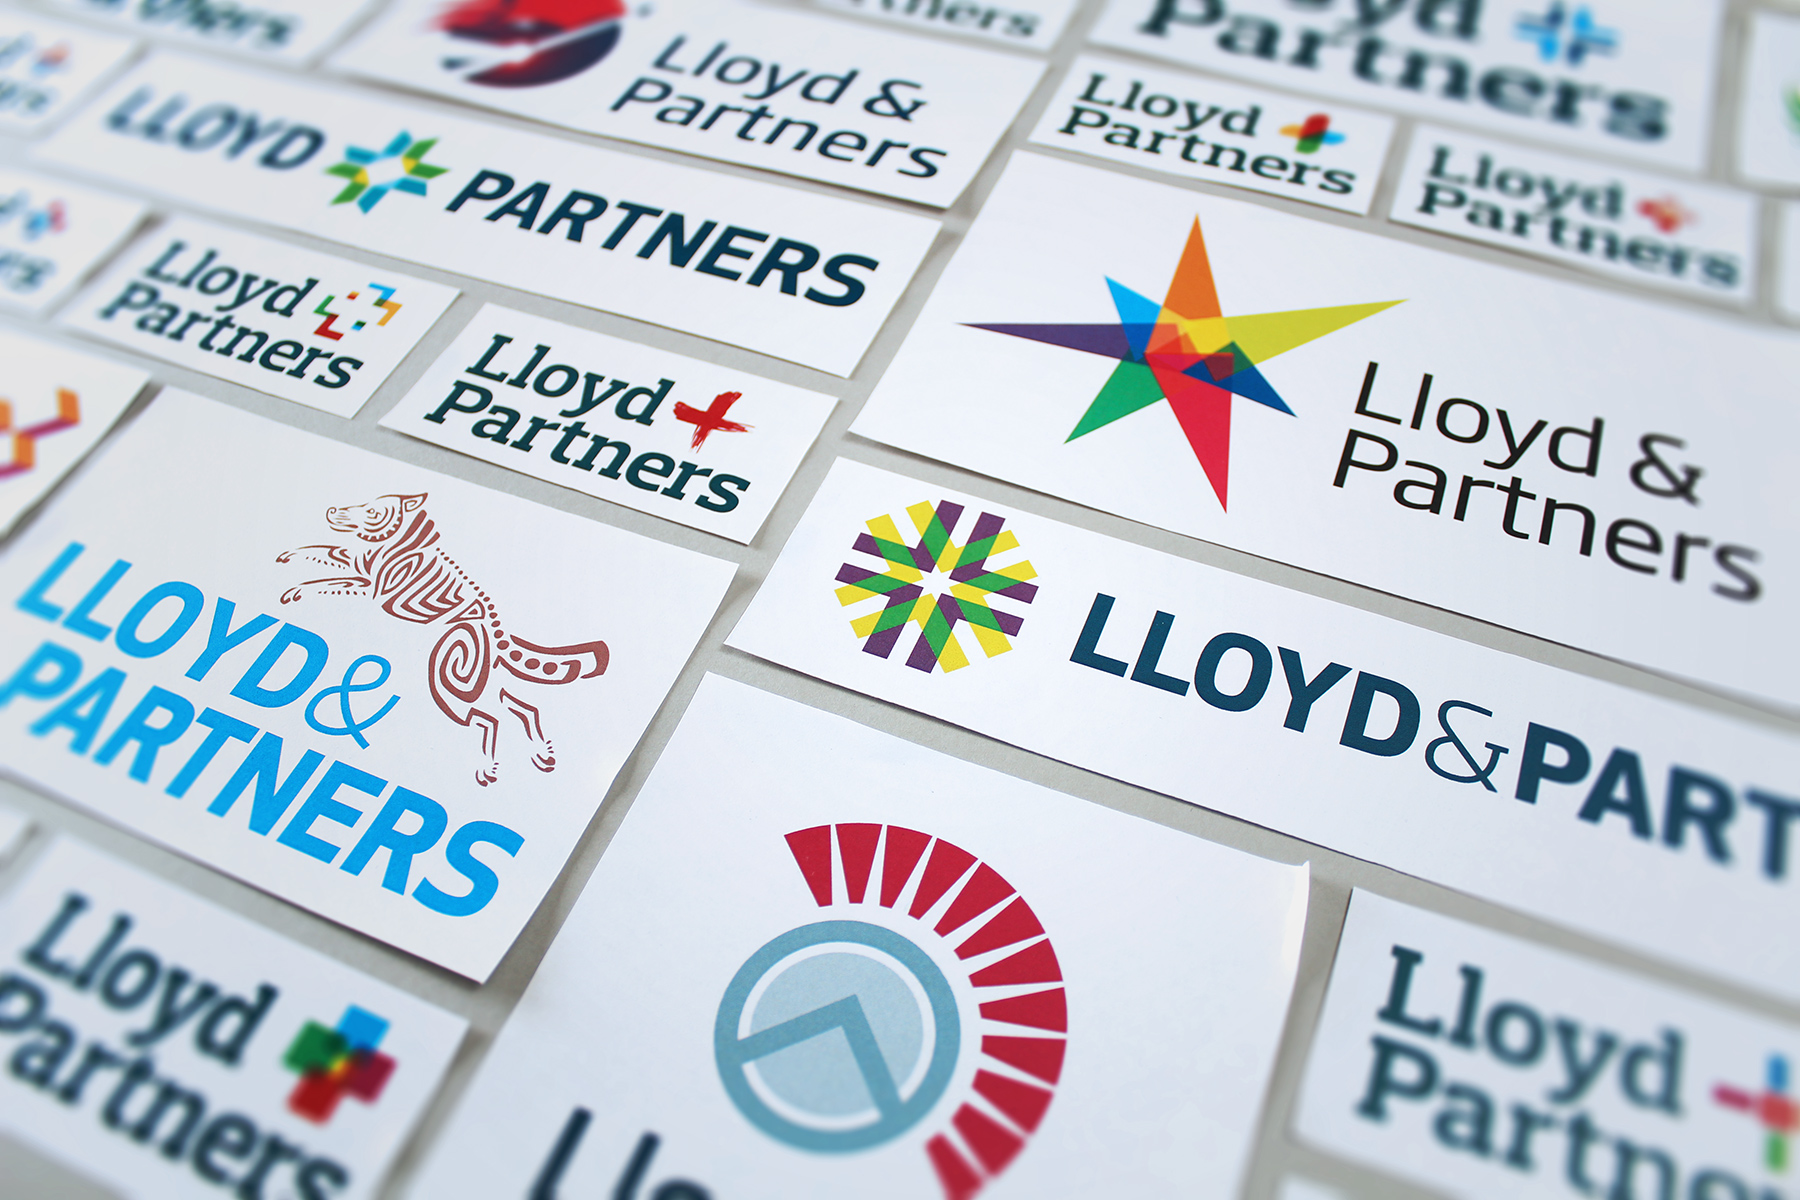 A variety of logo concepts were developed, each taking influence from the brand's strategic proposition message of 'Collaboration through positive aggression'